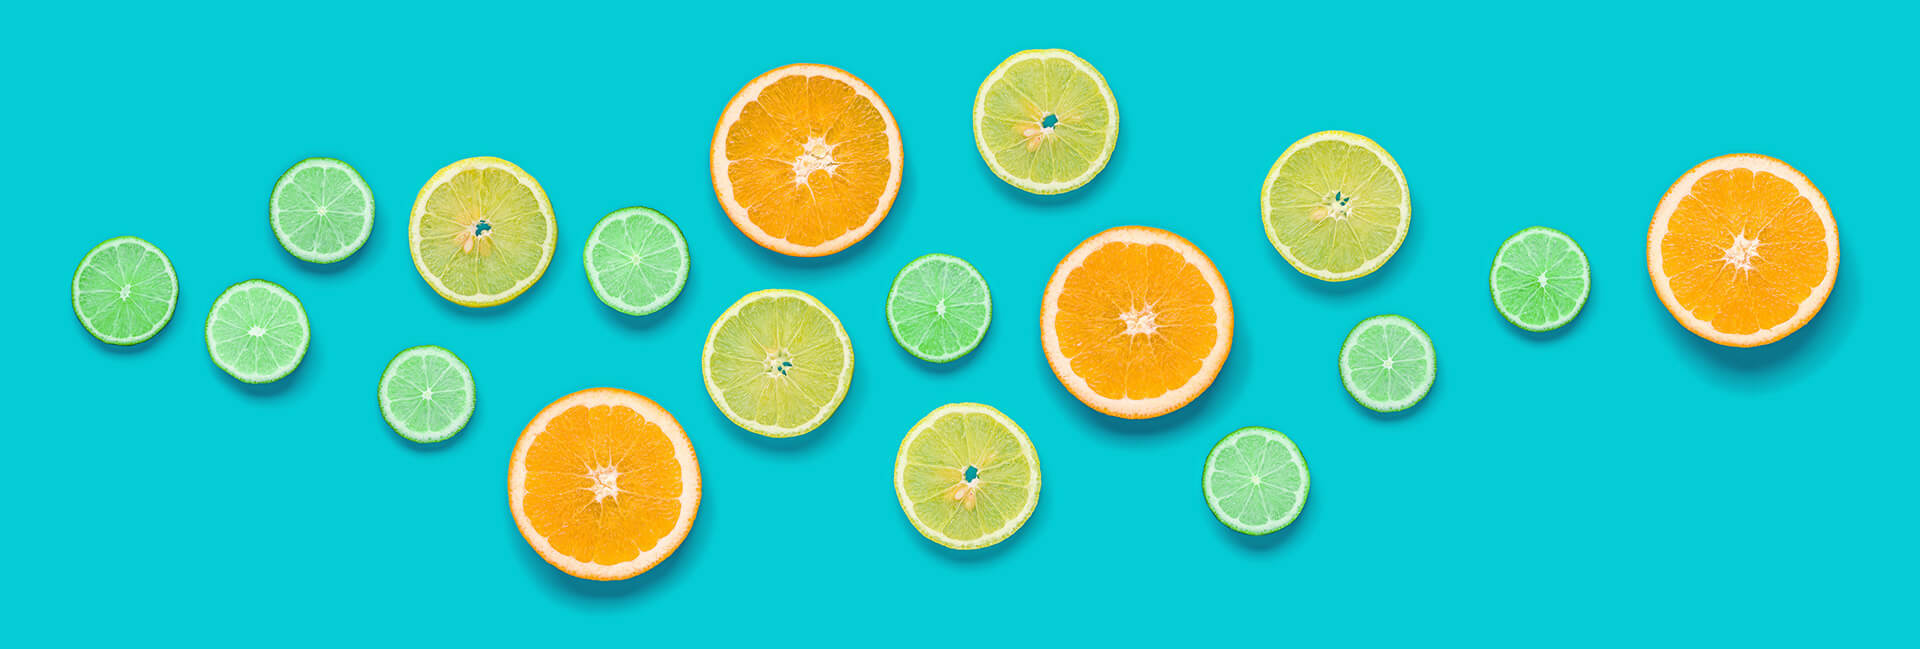 Citrus fruits against a blue-green background